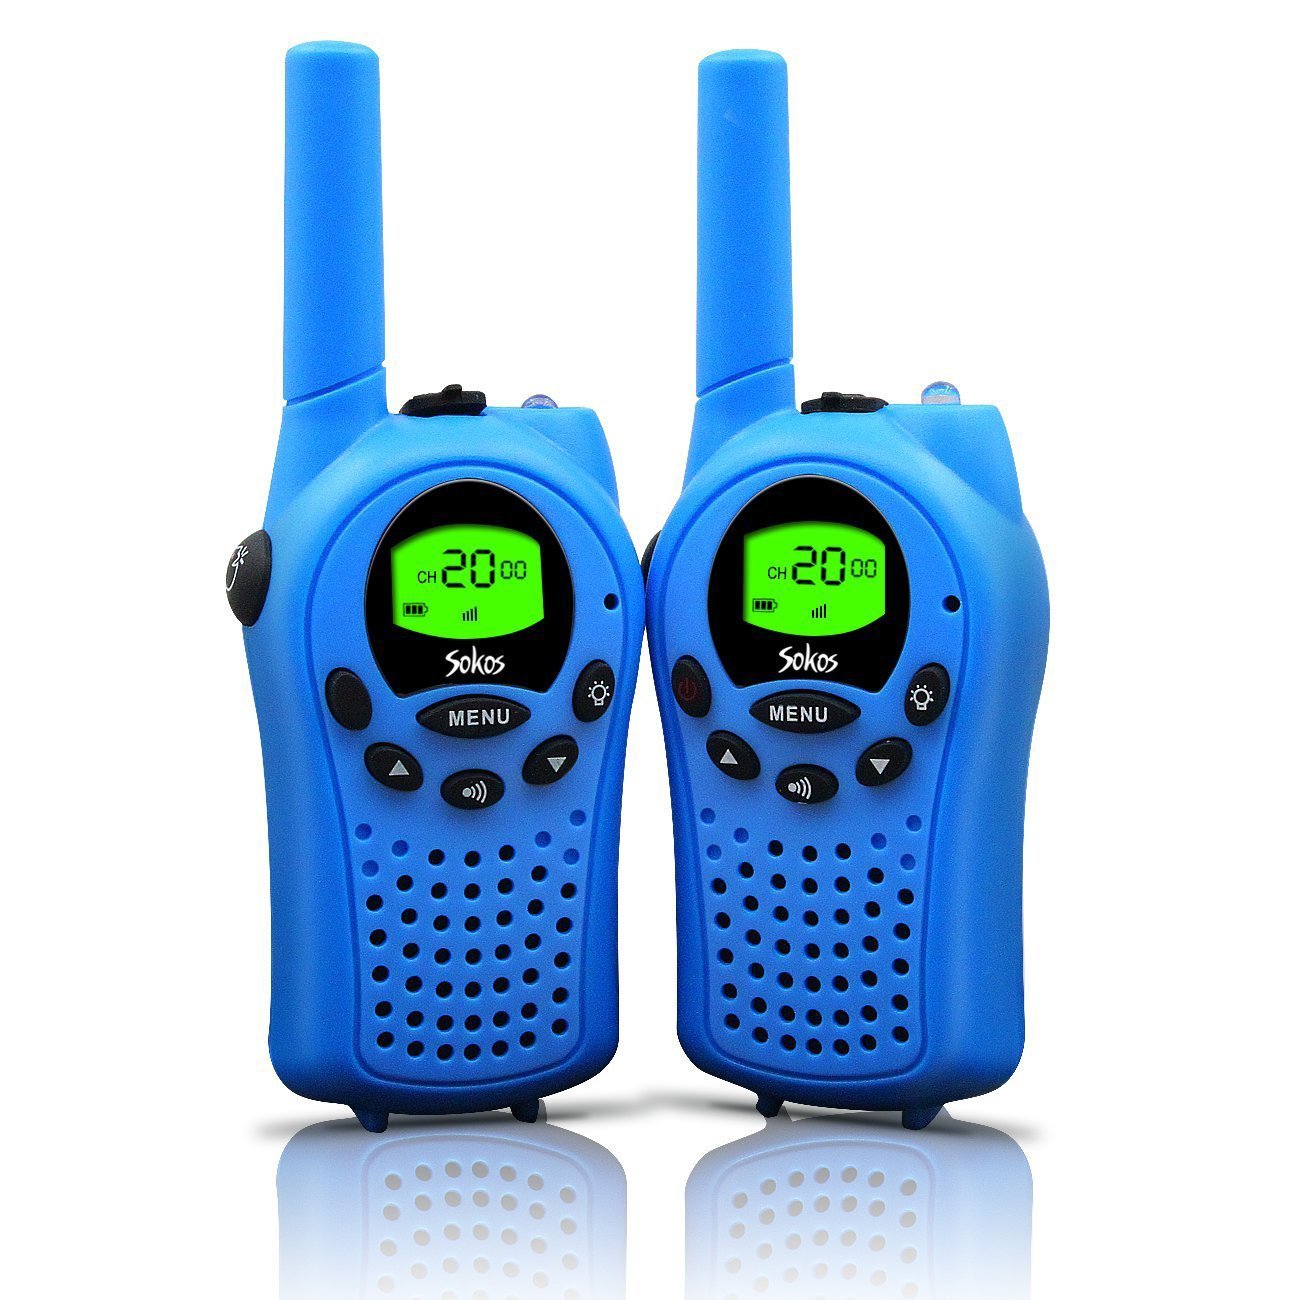 a pair of walkie talkie in blue color for boys